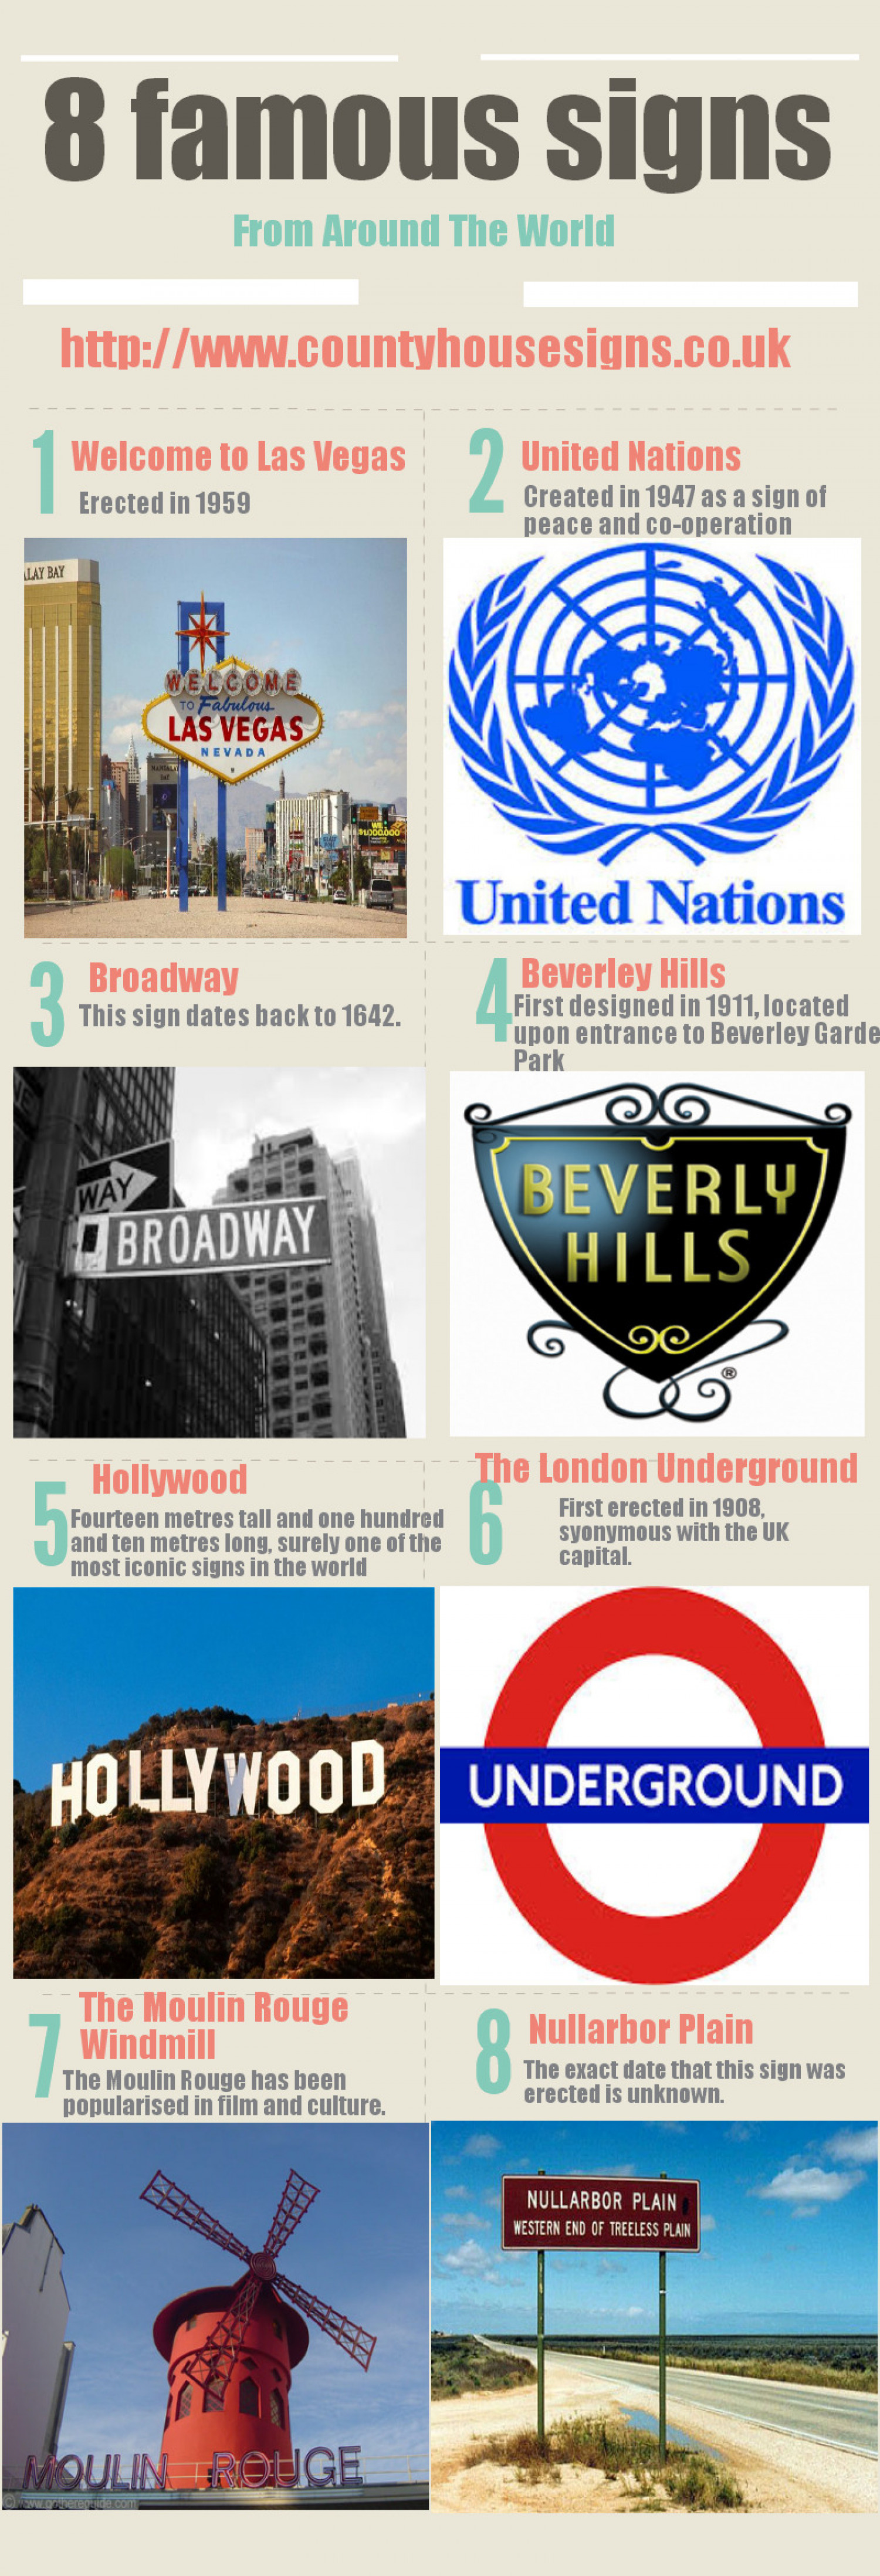 8 Famous Signs From Around The World Infographic